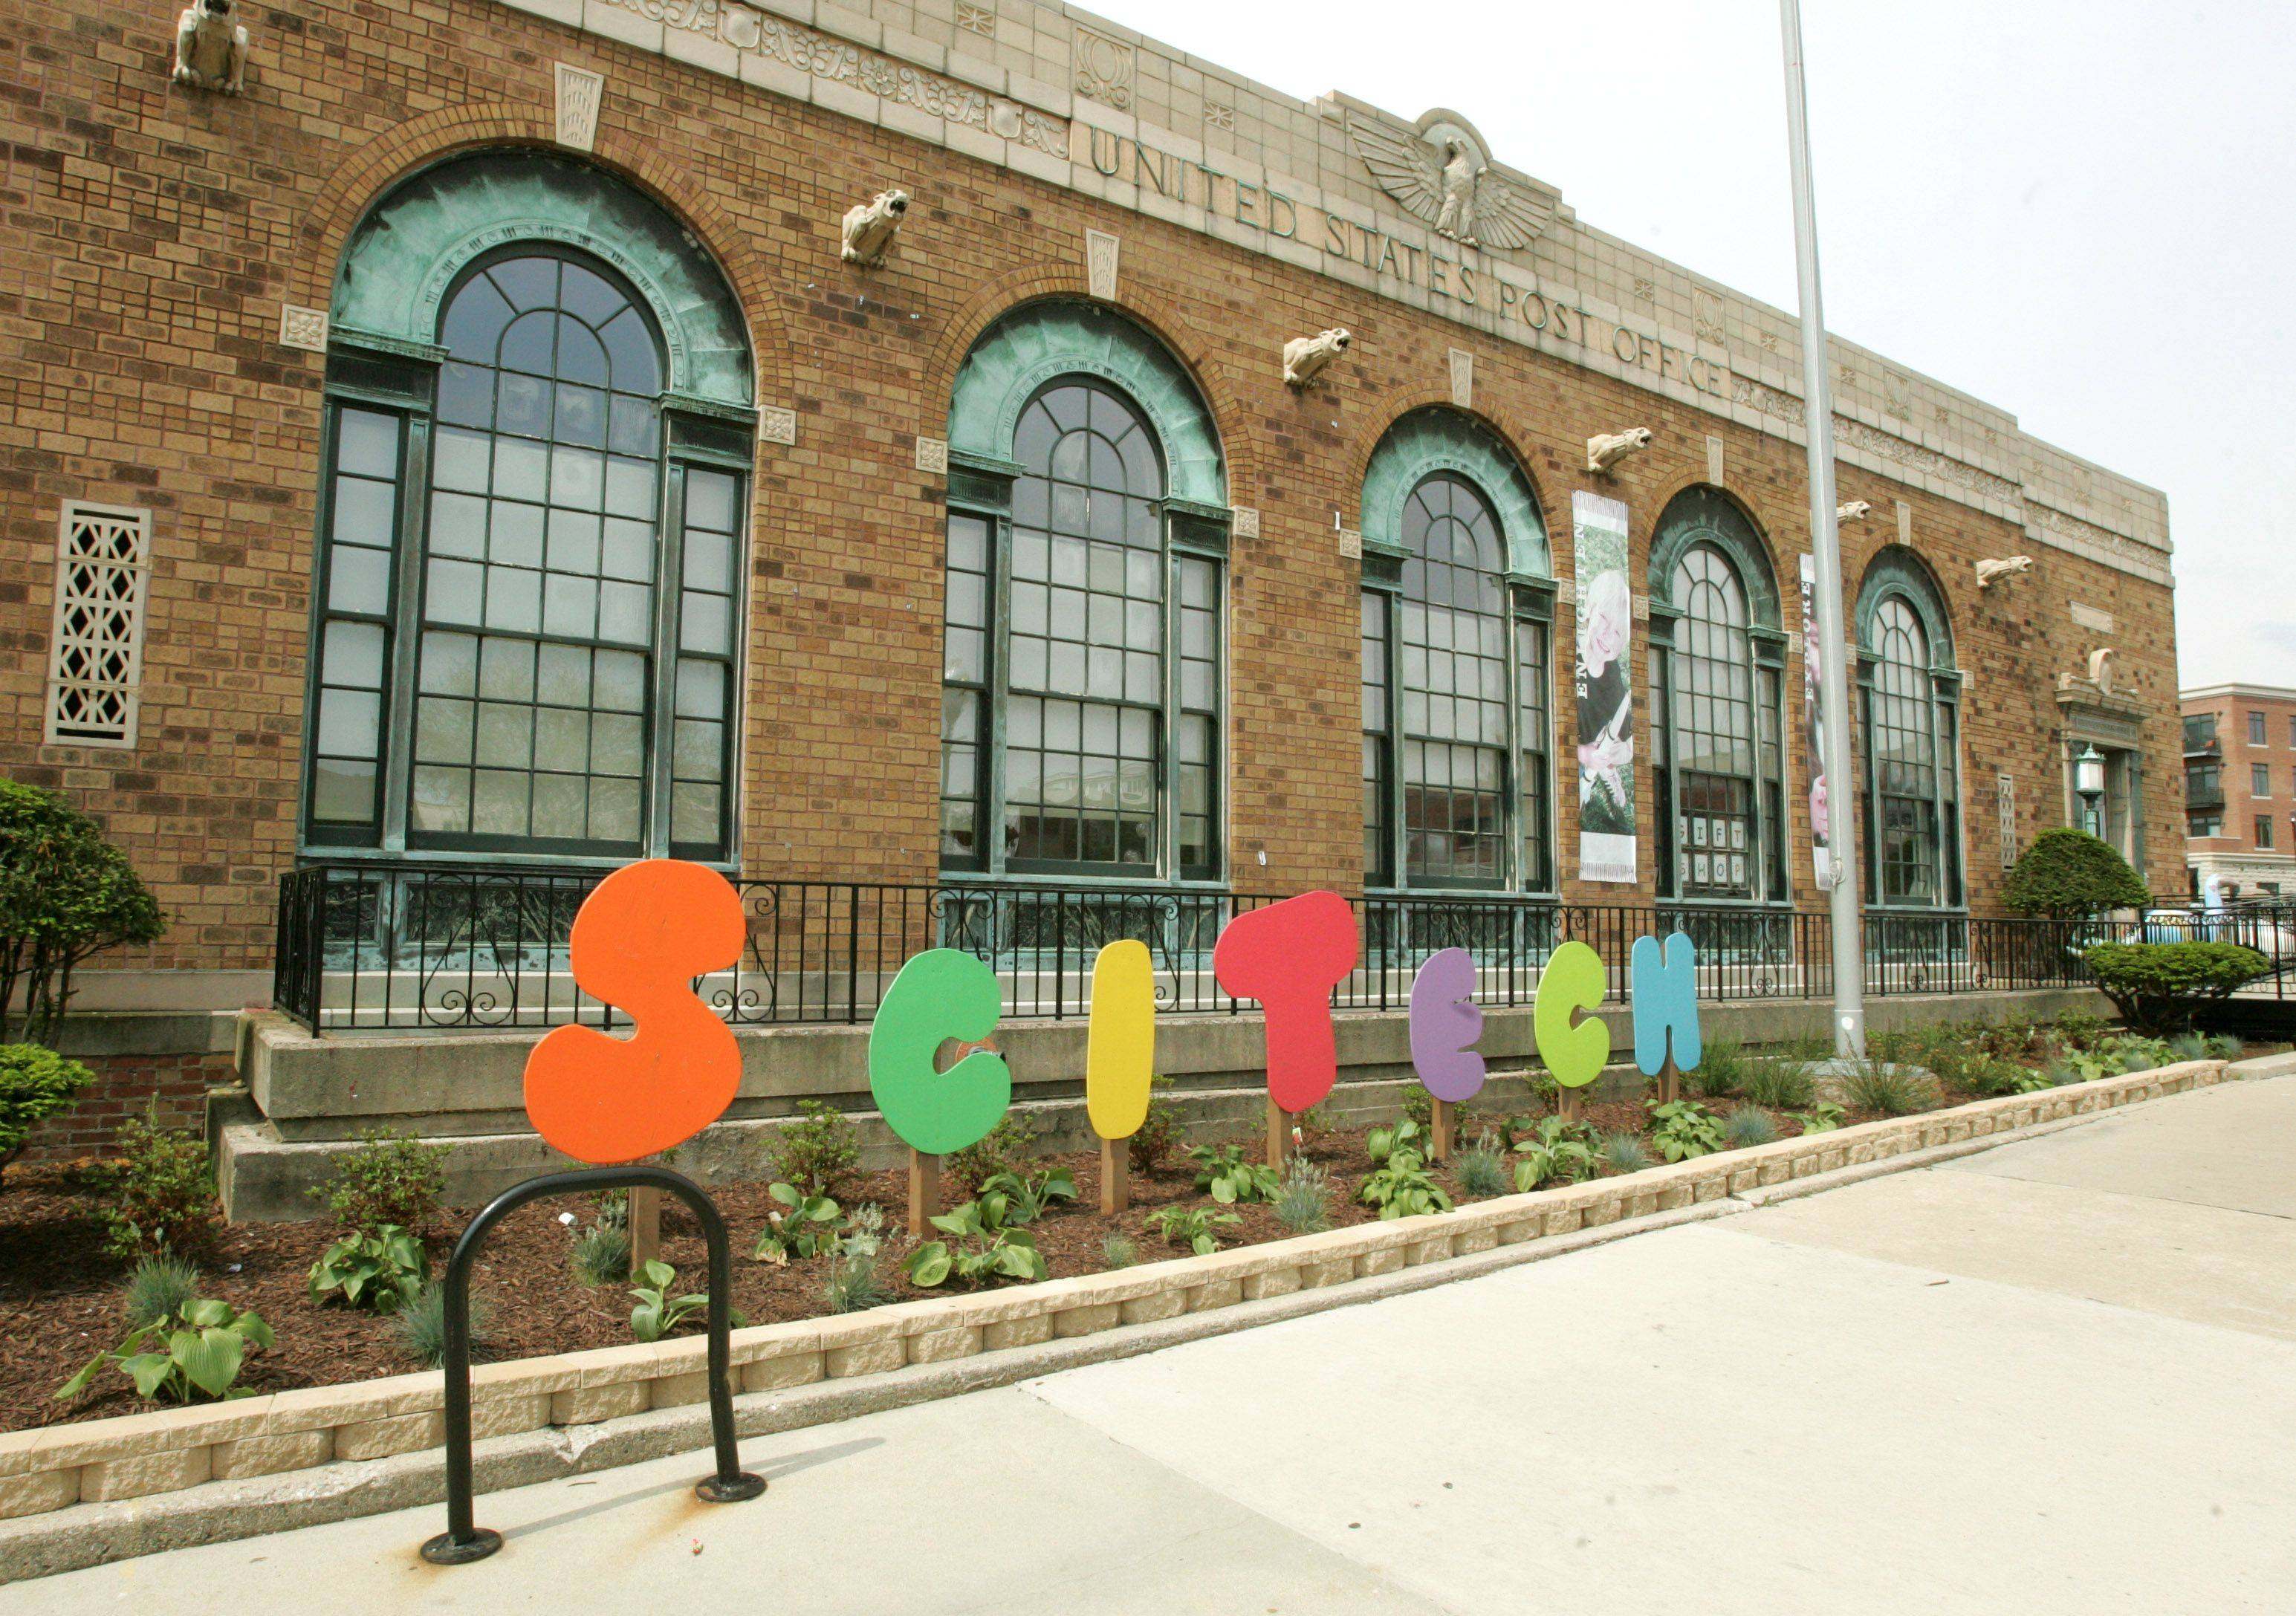 SciTech Hands-on Museum in Aurora, housed in a 1930s former post office building, is undergoing renovations and planning additions, including a science- and math- focused preschool.